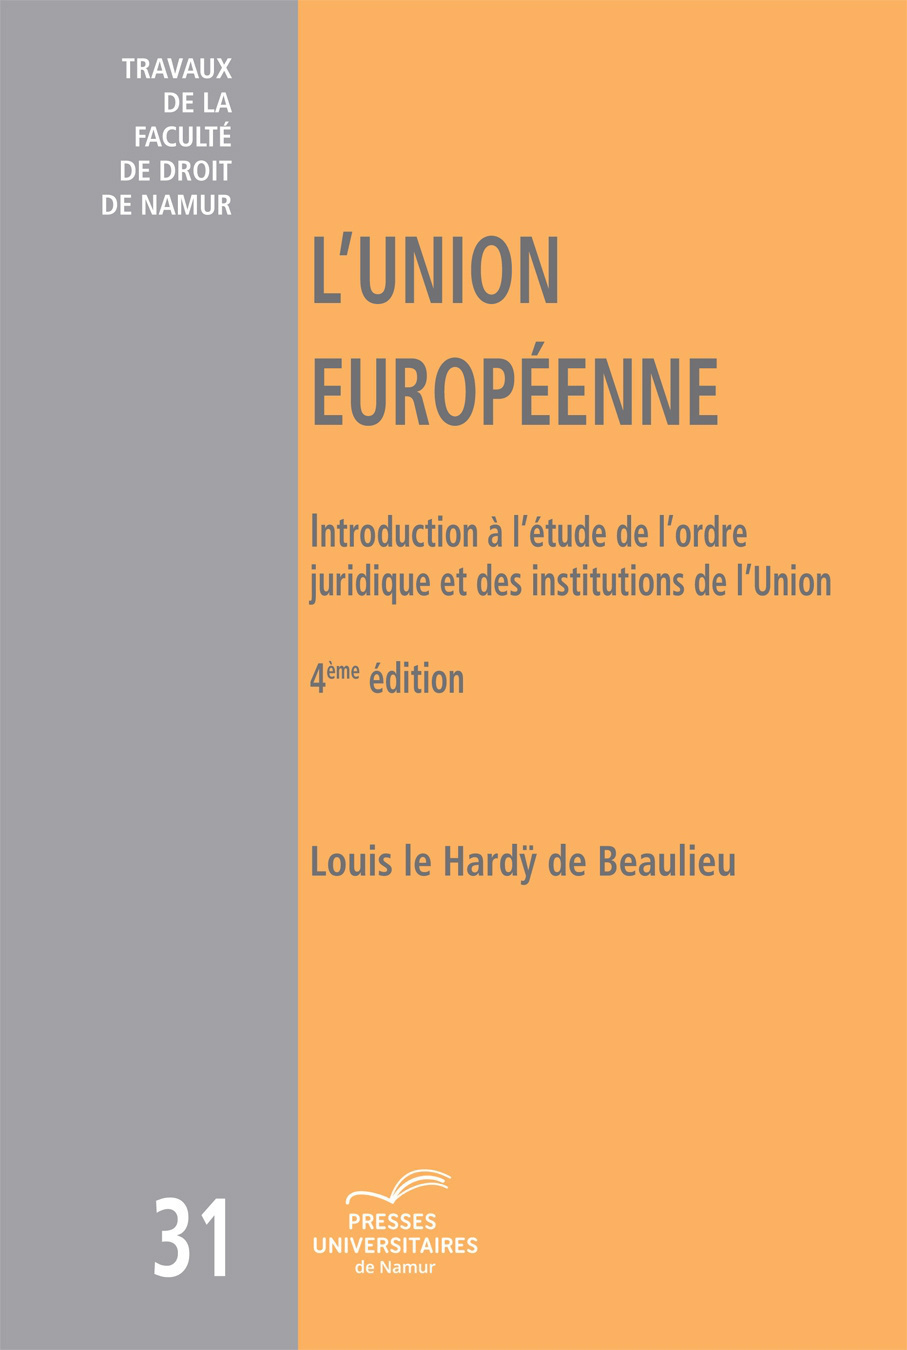 L'UNION EUROPEENNE - 4E EDITION